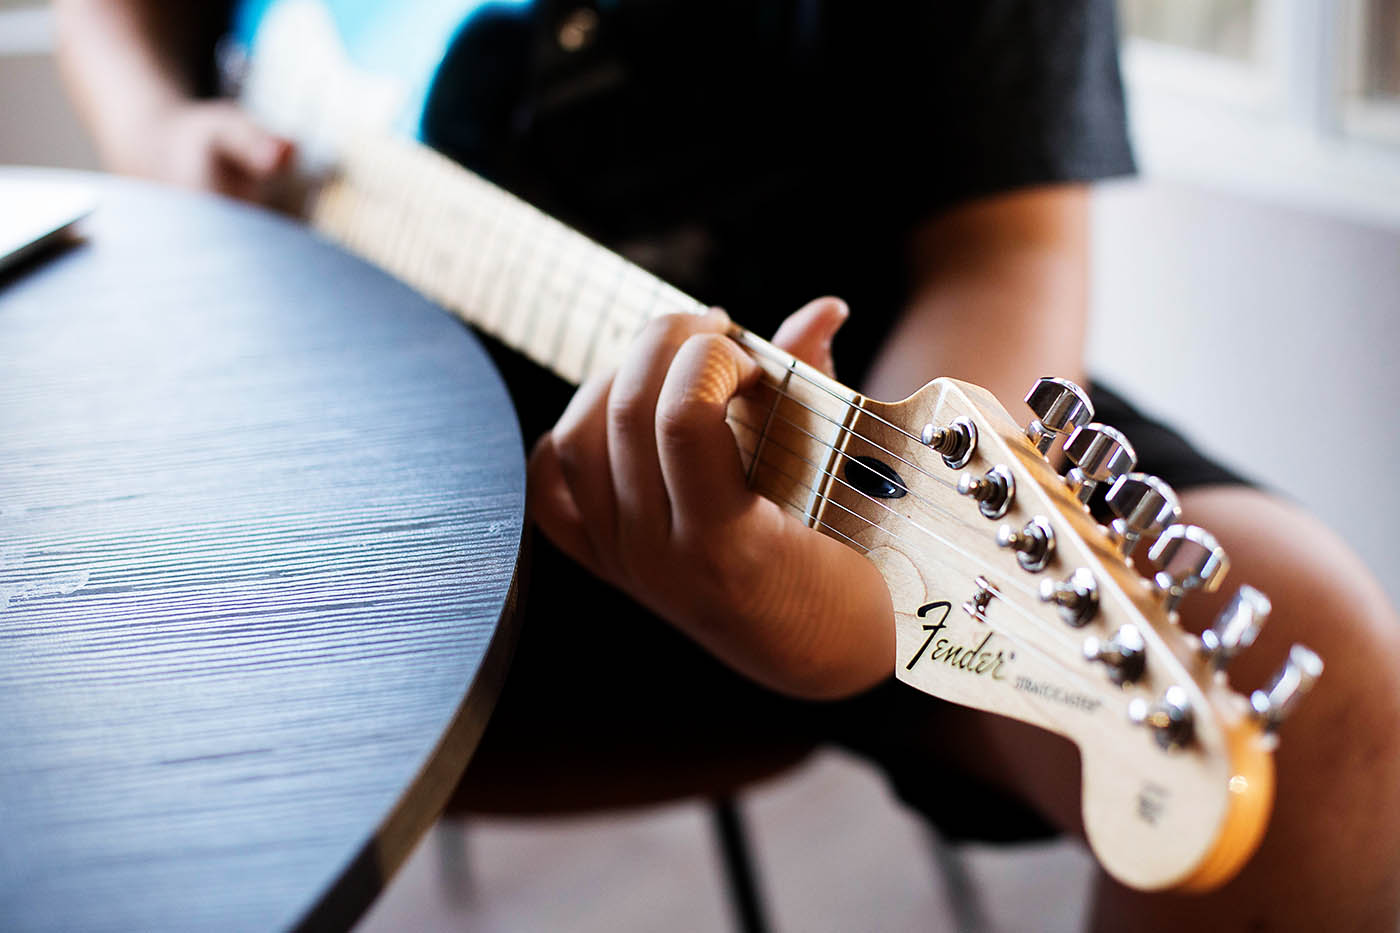 Gift of experience ideas - online guitar lessons with Fender Play AND a guitar giveaway!